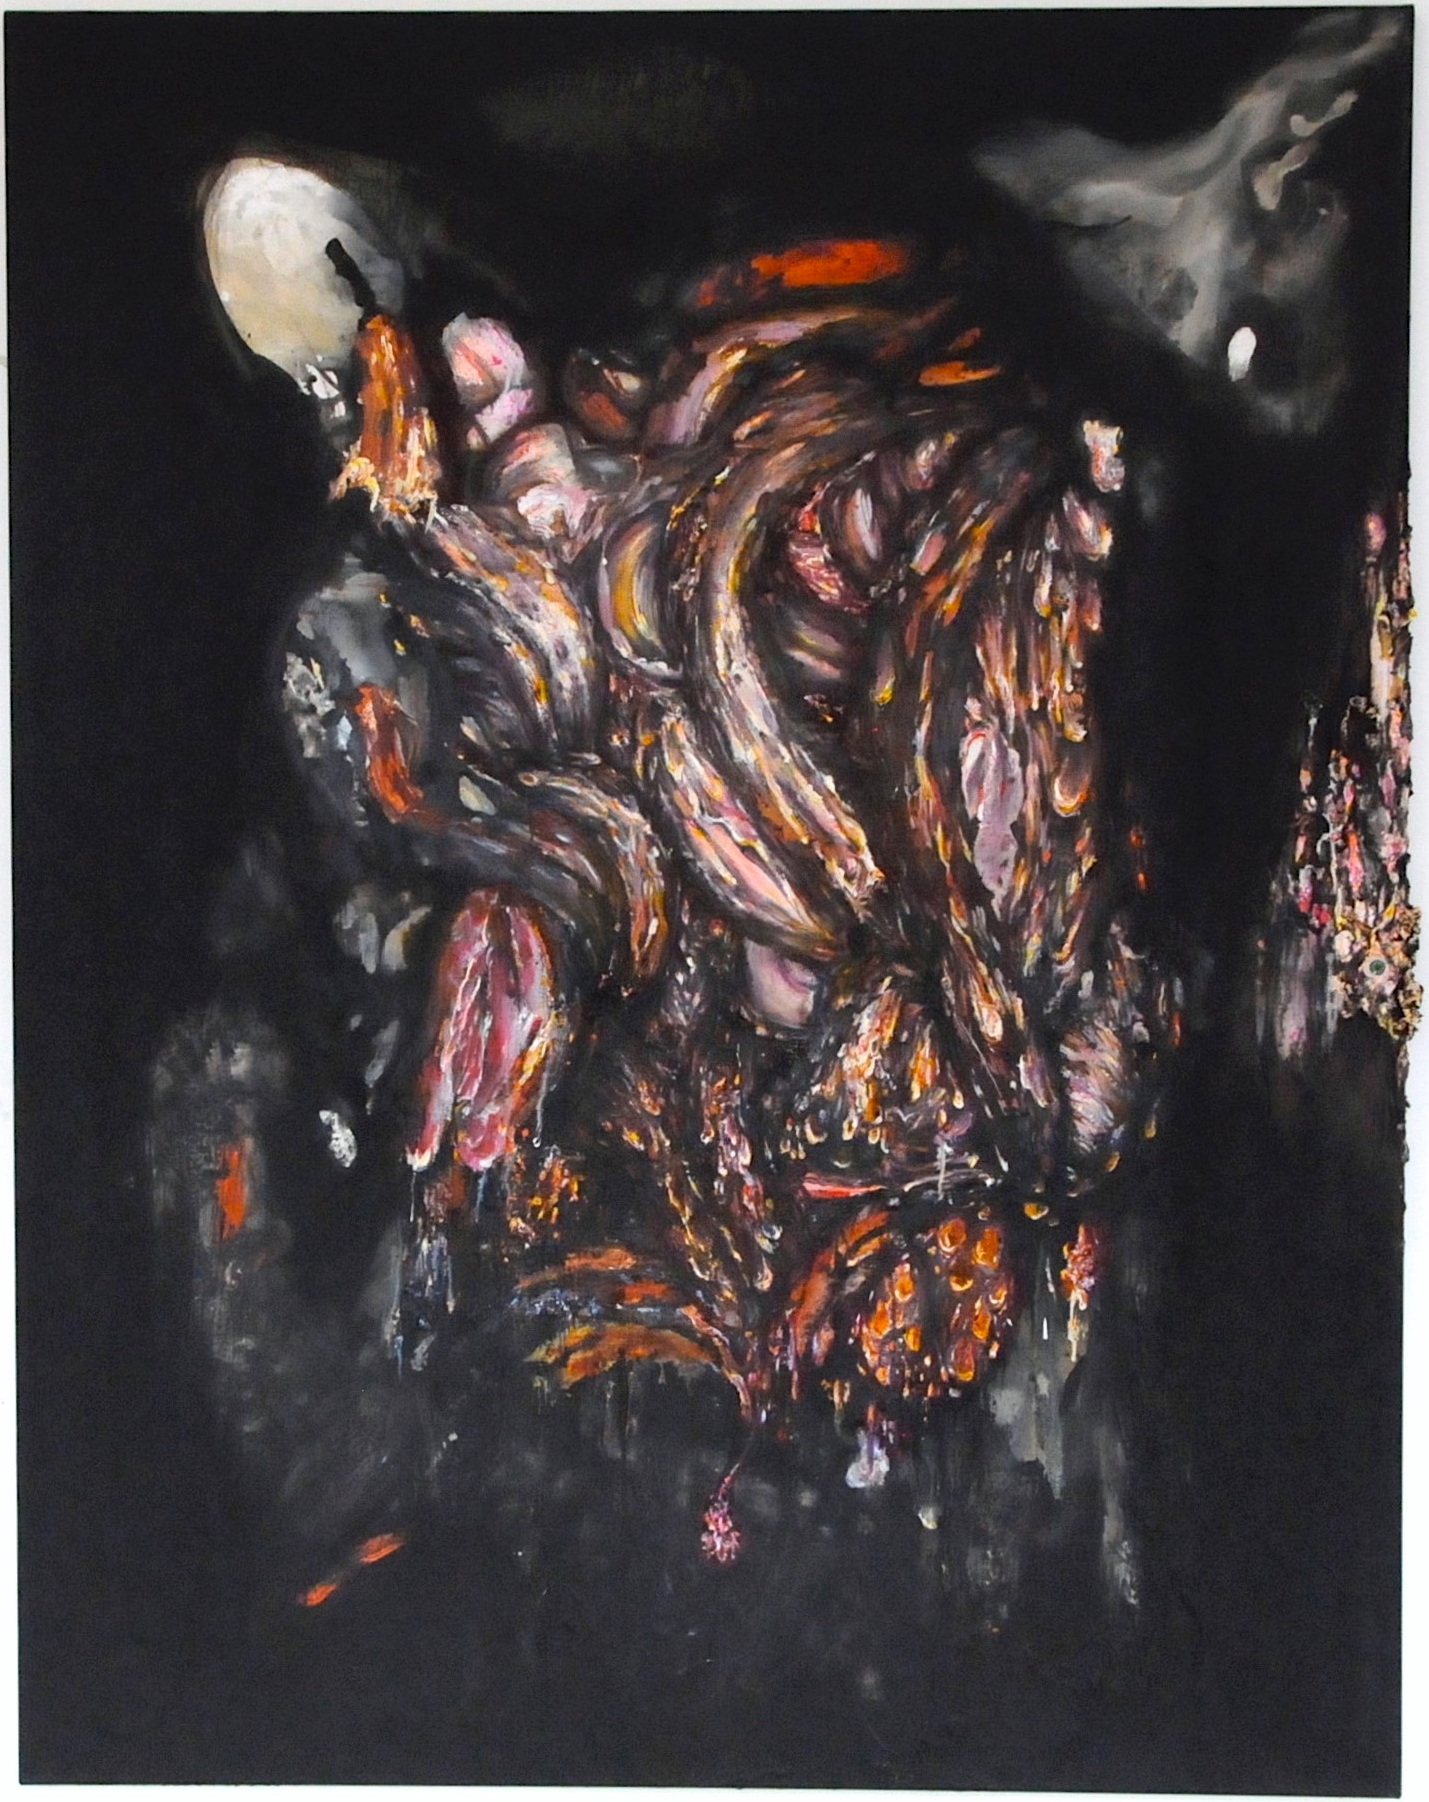 From the dark / 2013 / acrylic and oil on canvas / 72,83 x 56,69 inches / 185 x 144 cm